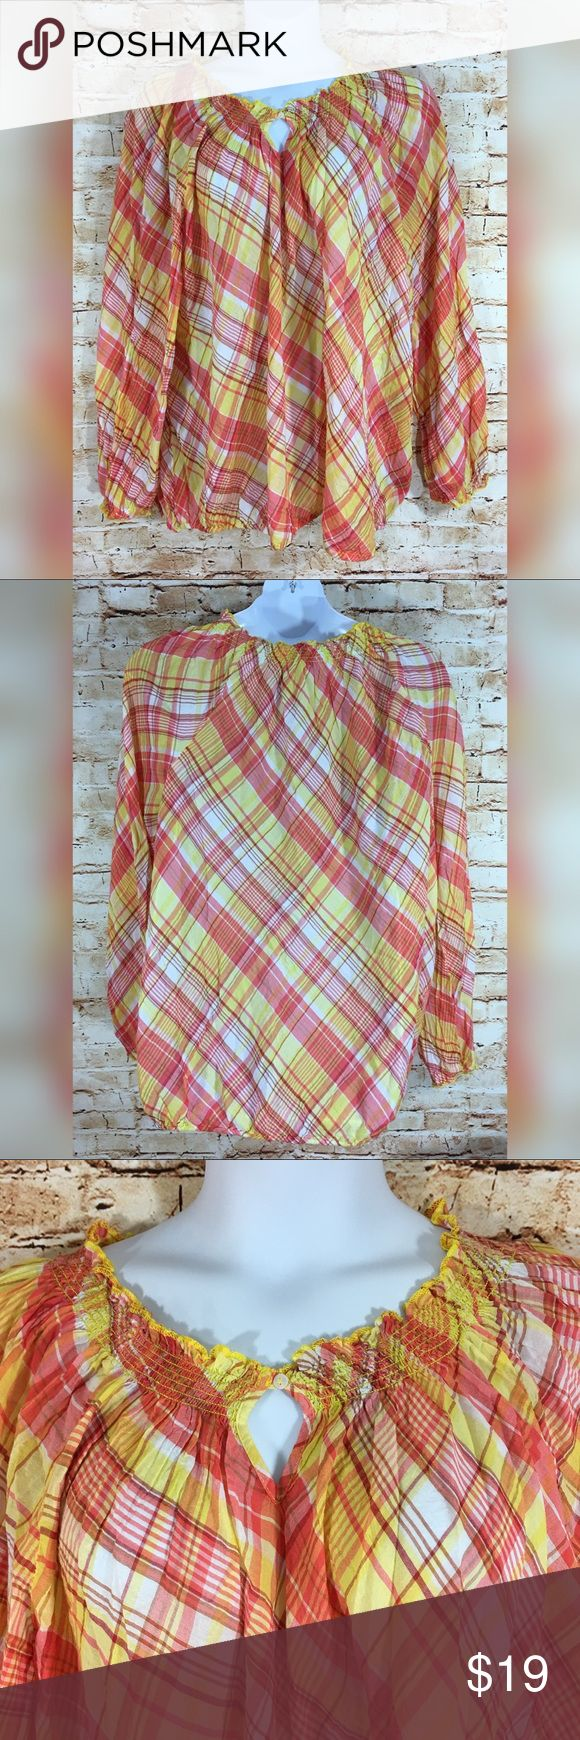 NEW Lane Bryant Plaid Peasant Keyhole Smock Top Brand new, never worn. Plus size yellow and orange Plaid shirt. Please see pics for measurements and more details (: Lane Bryant Tops Tees - Long Sleeve